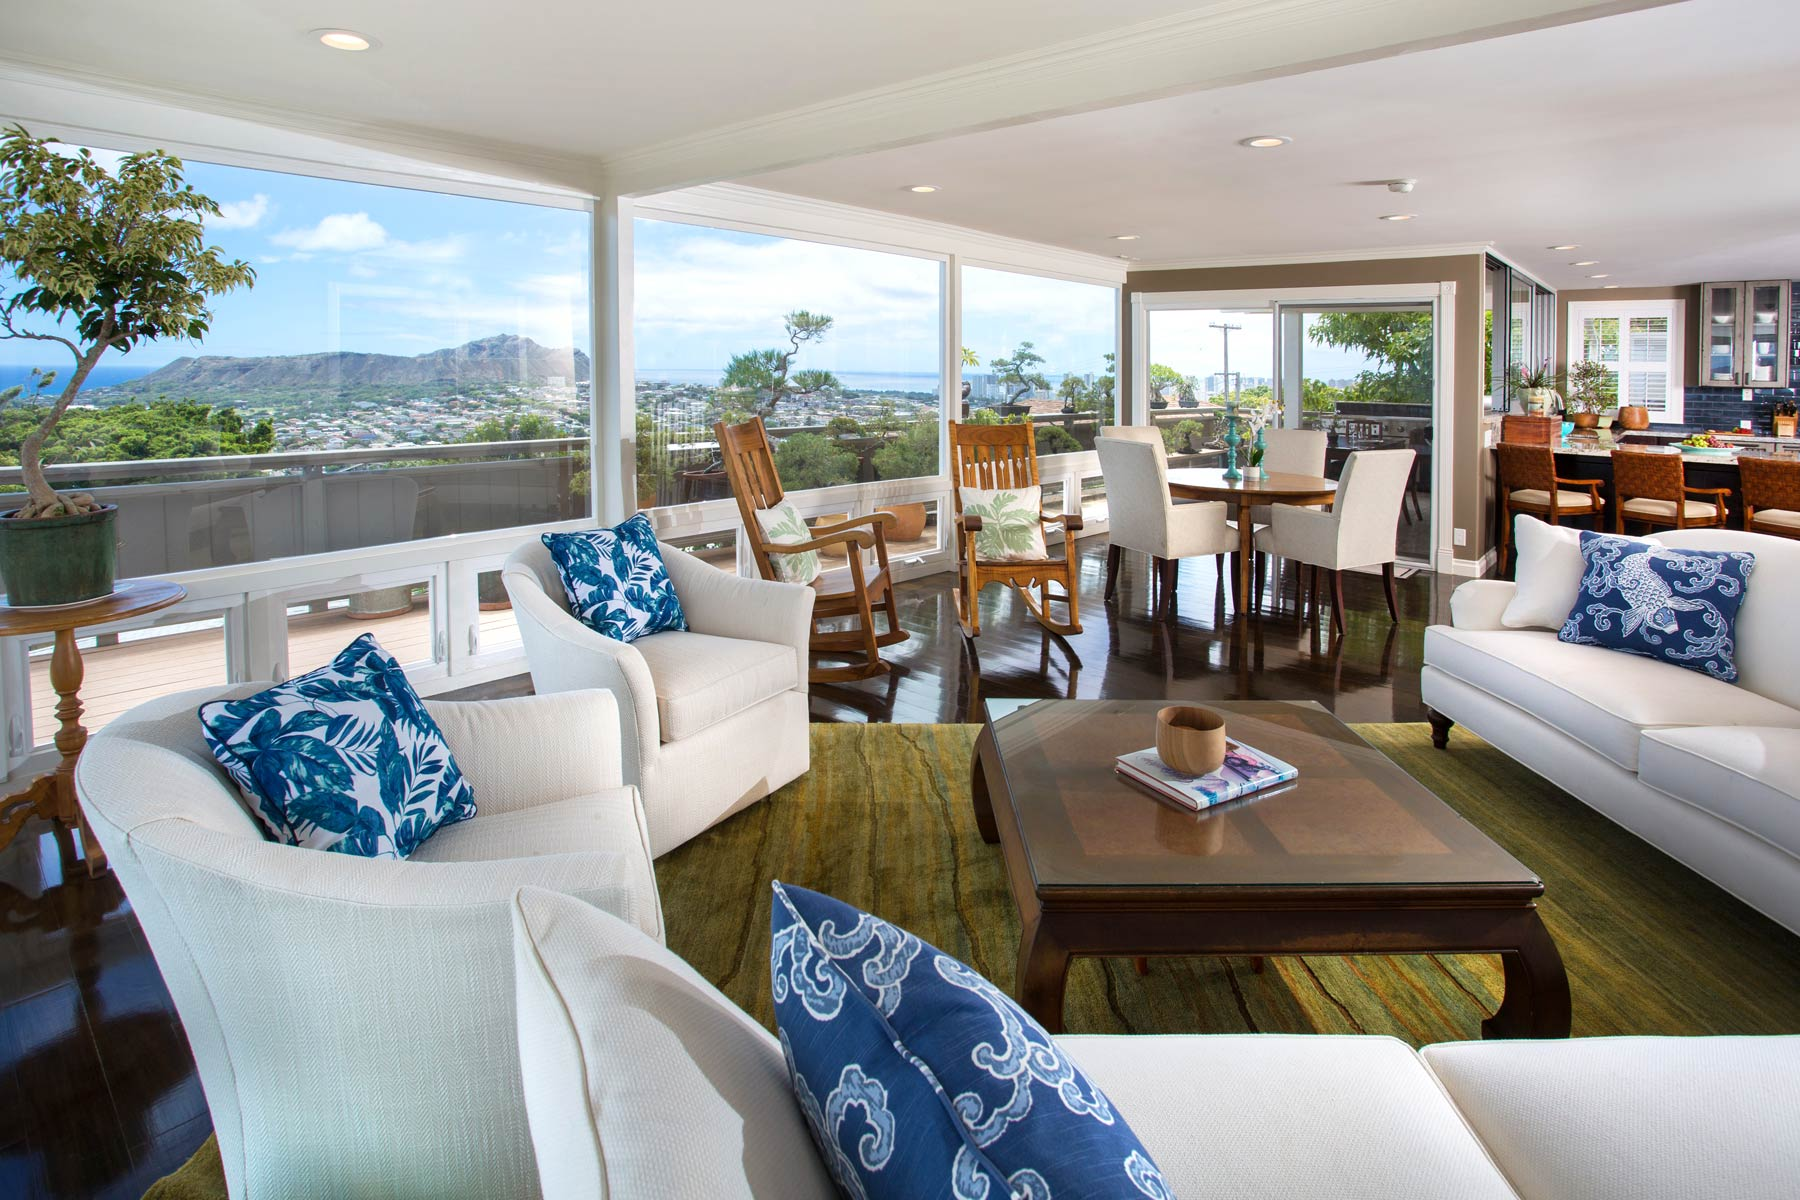 Maunalani living room remodel by Accent Design